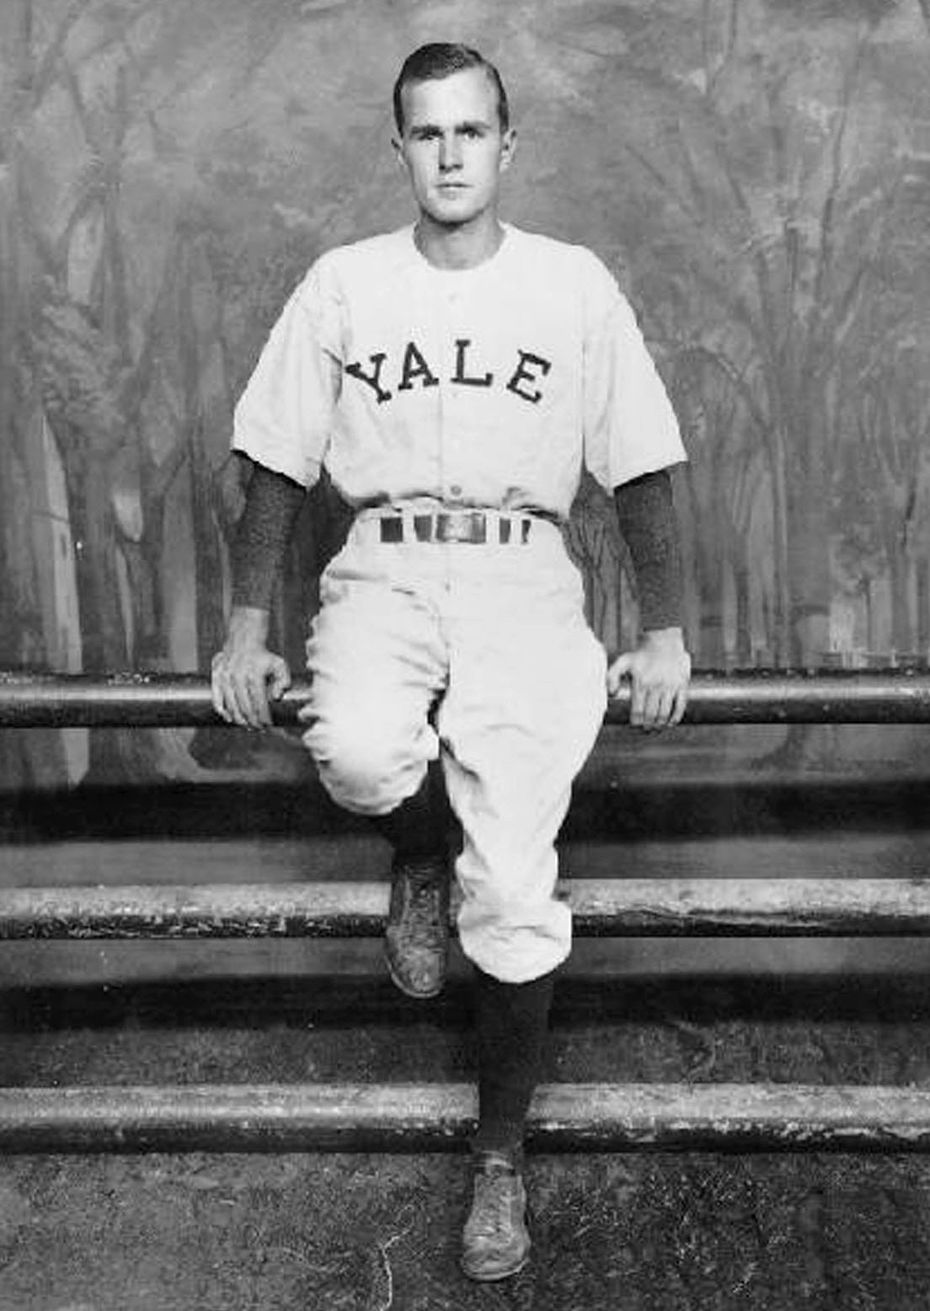 Bush in his baseball uniform at Yale University, circa 1945-48. (George W. Bush Library)